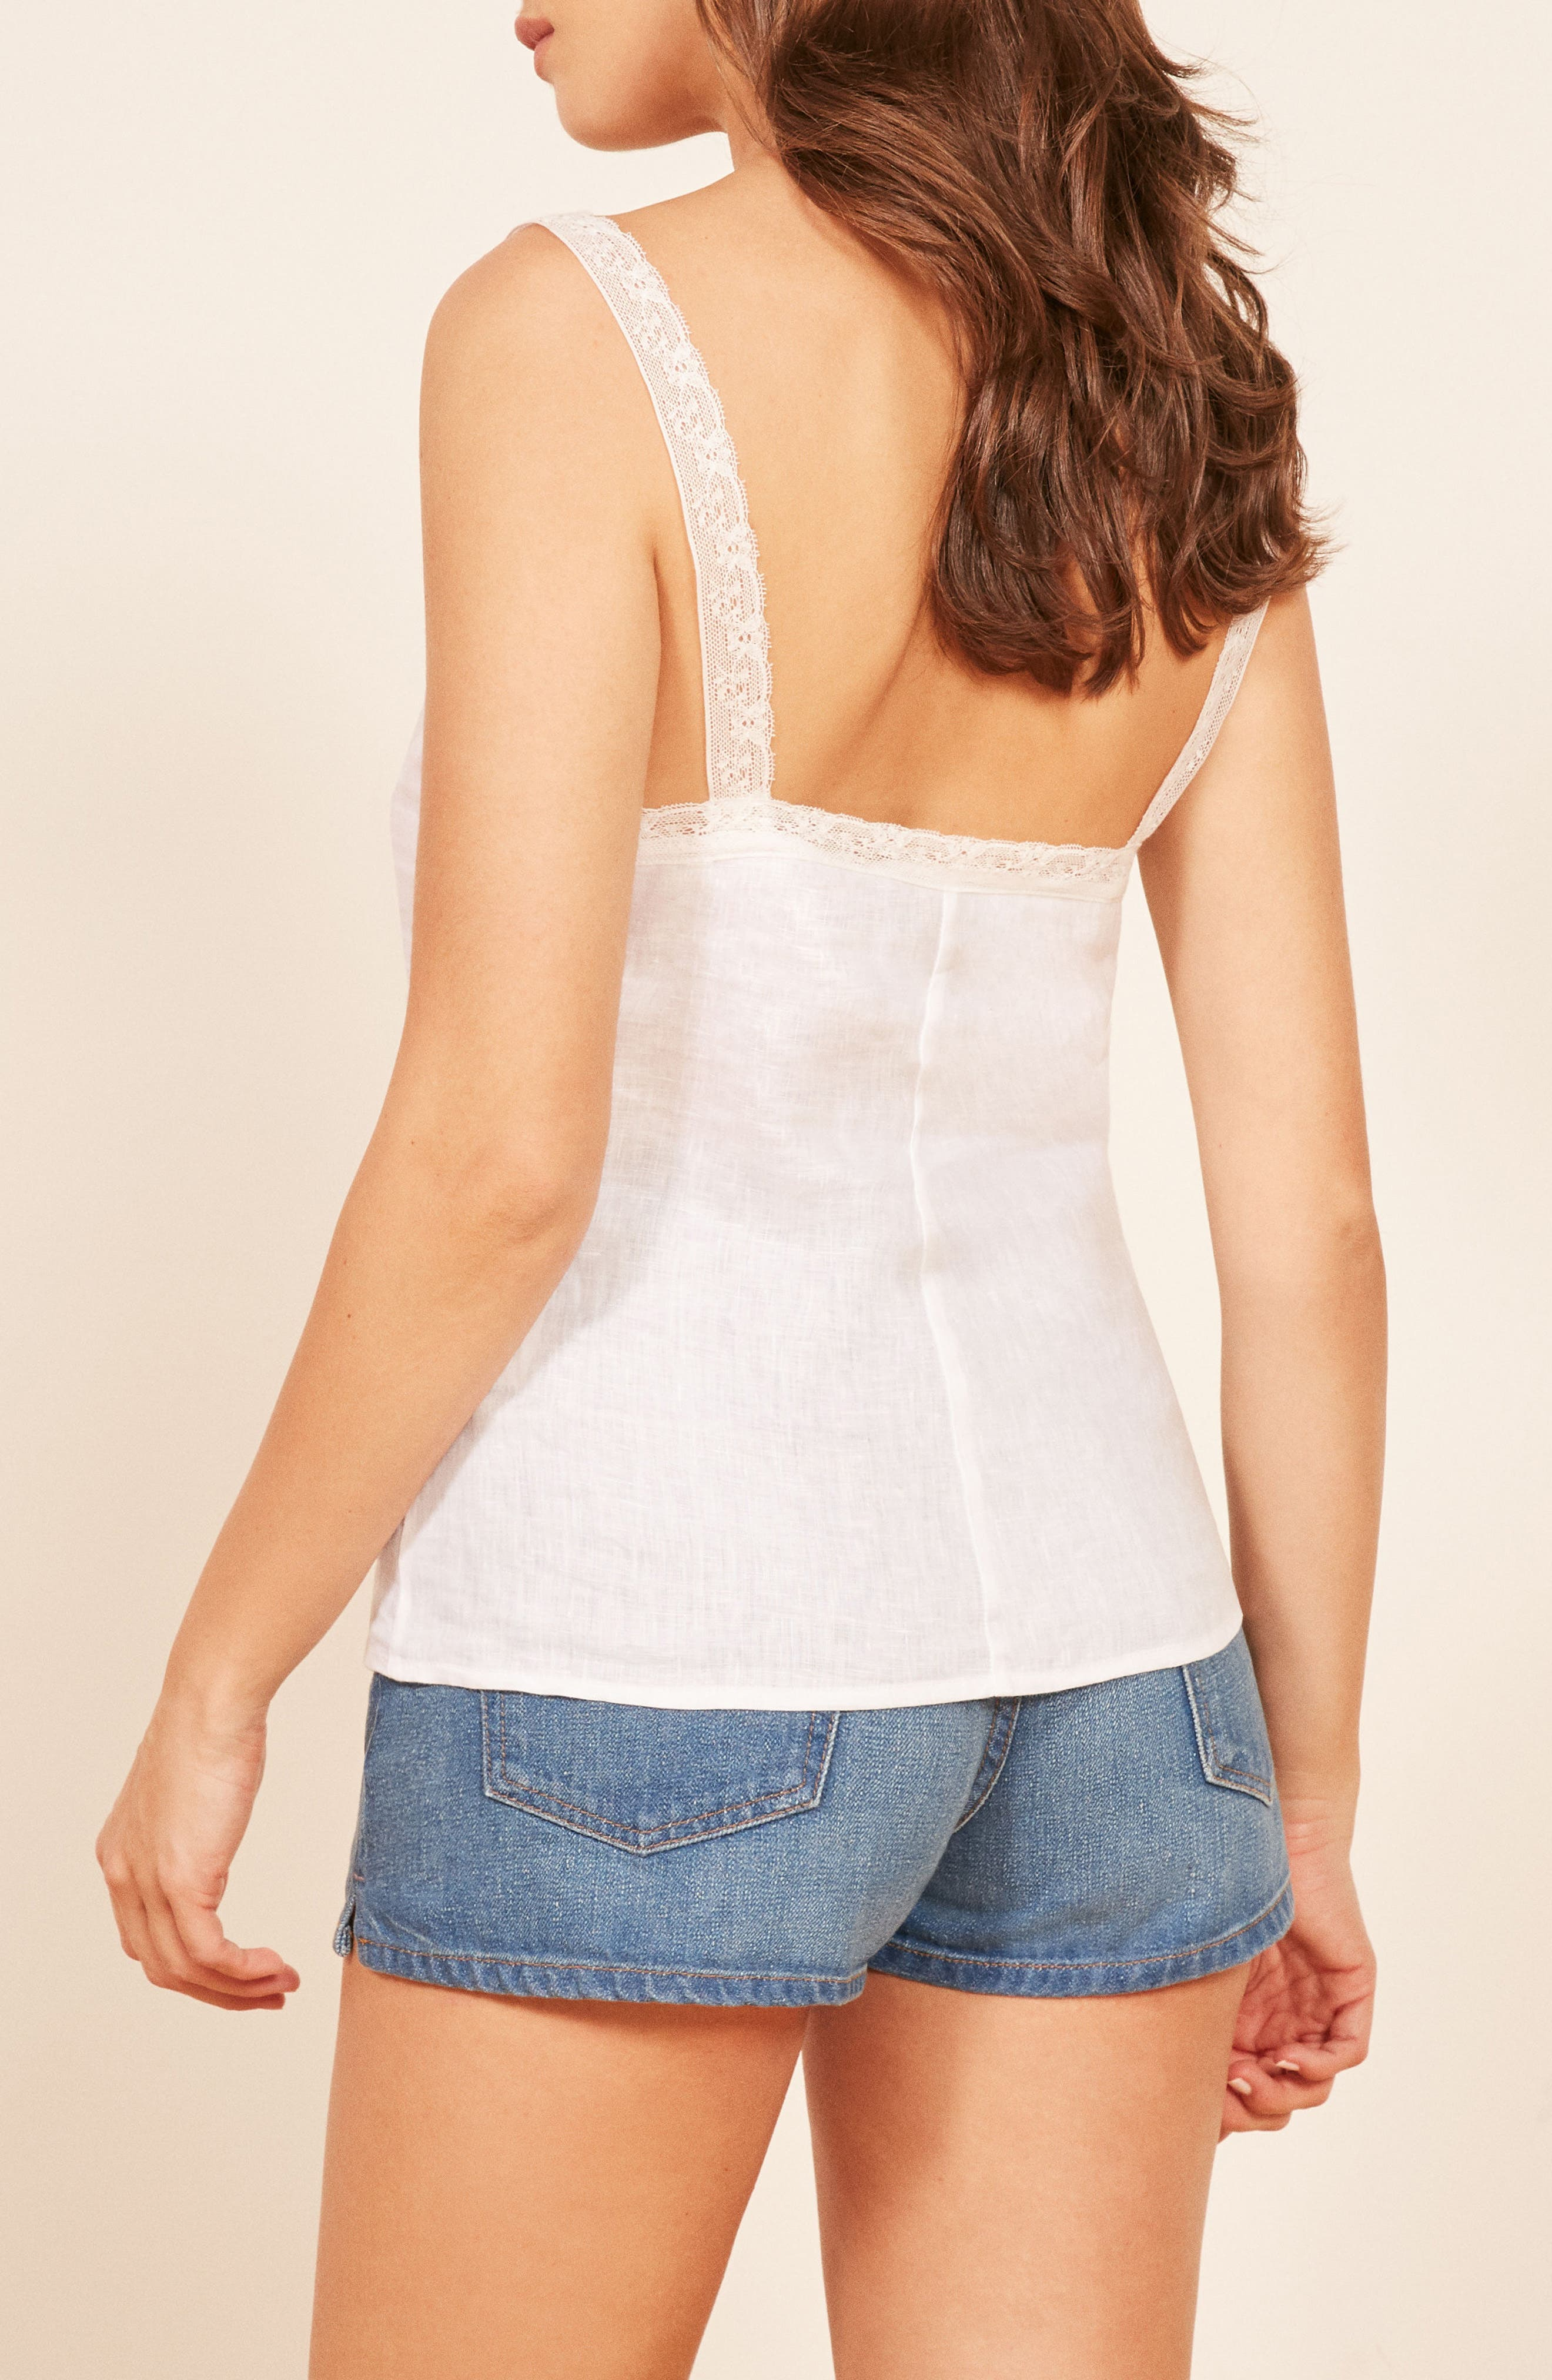 REFORMATION,                             Emmie Lace Trim Linen Camisole,                             Alternate thumbnail 2, color,                             100